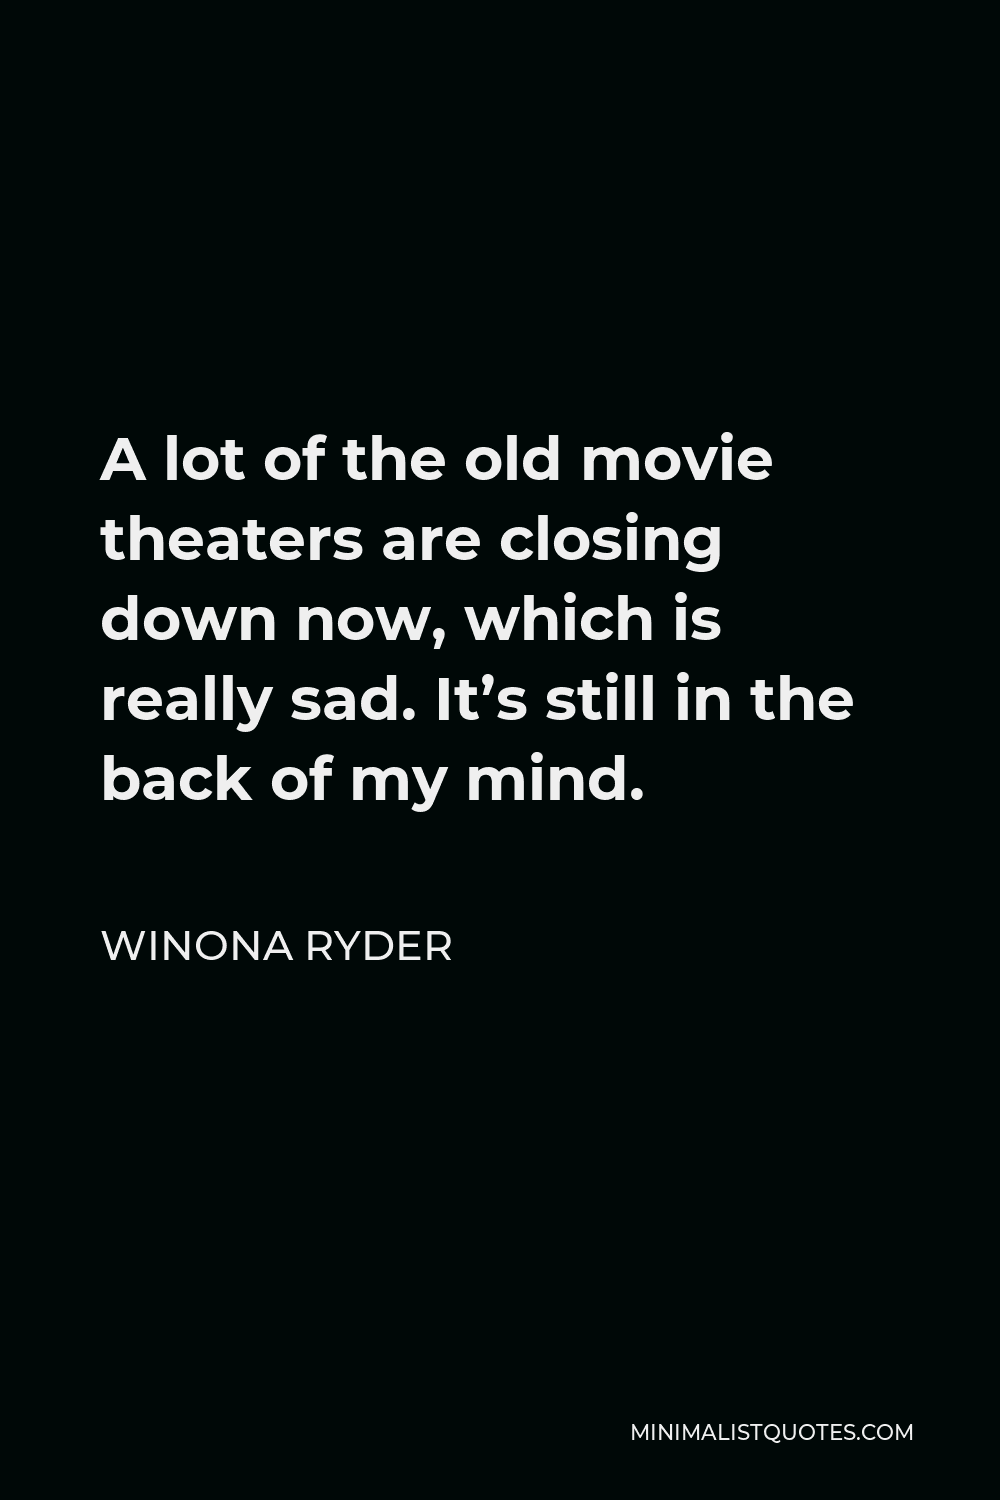 Winona Ryder Quote - A lot of the old movie theaters are closing down now, which is really sad. It's still in the back of my mind.